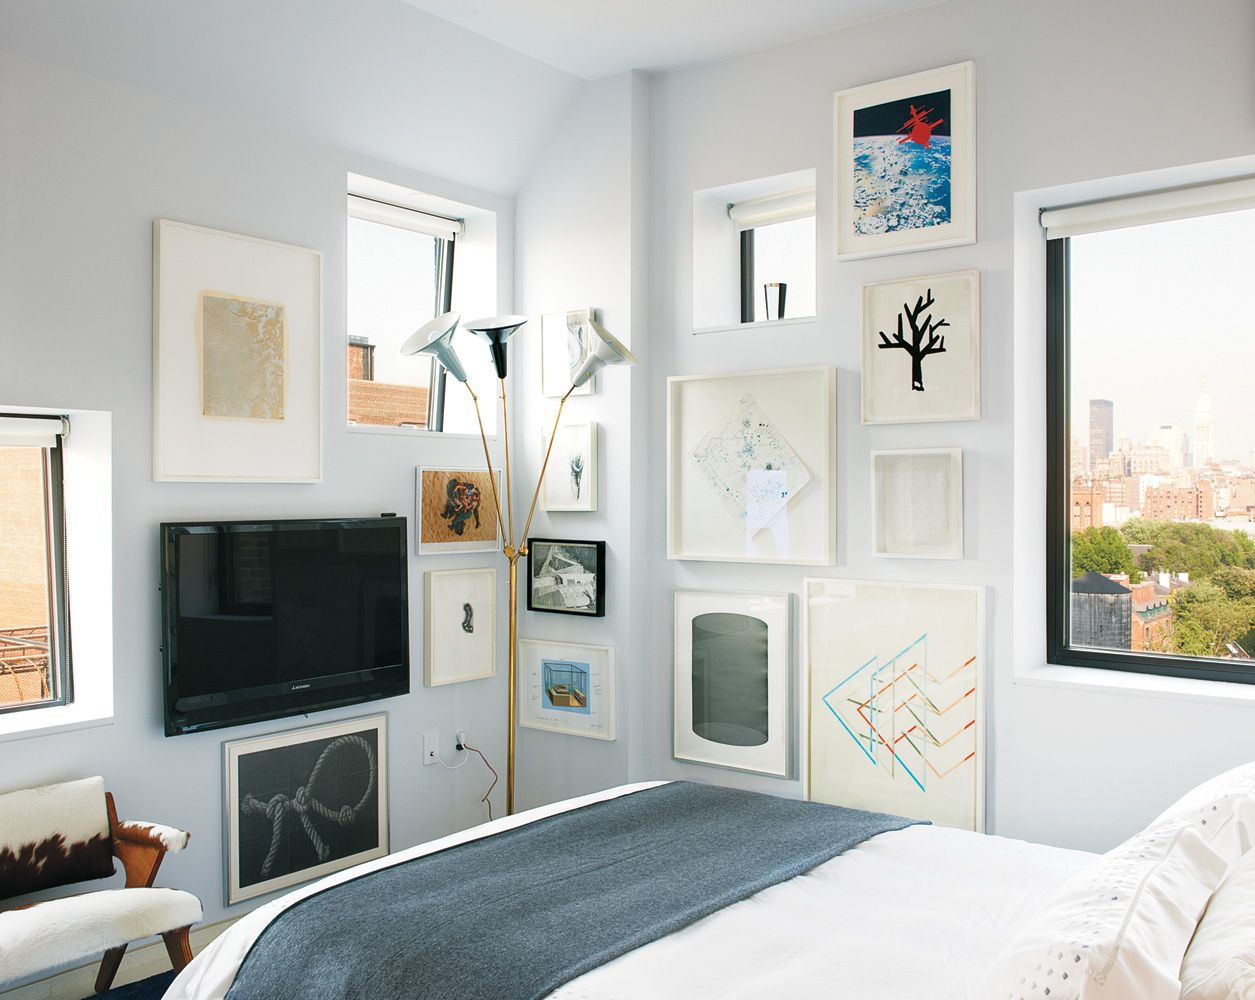 Master bedroom gallery wall  gallery wall  diy  Pinterest  Gallery wall Galleries and Walls